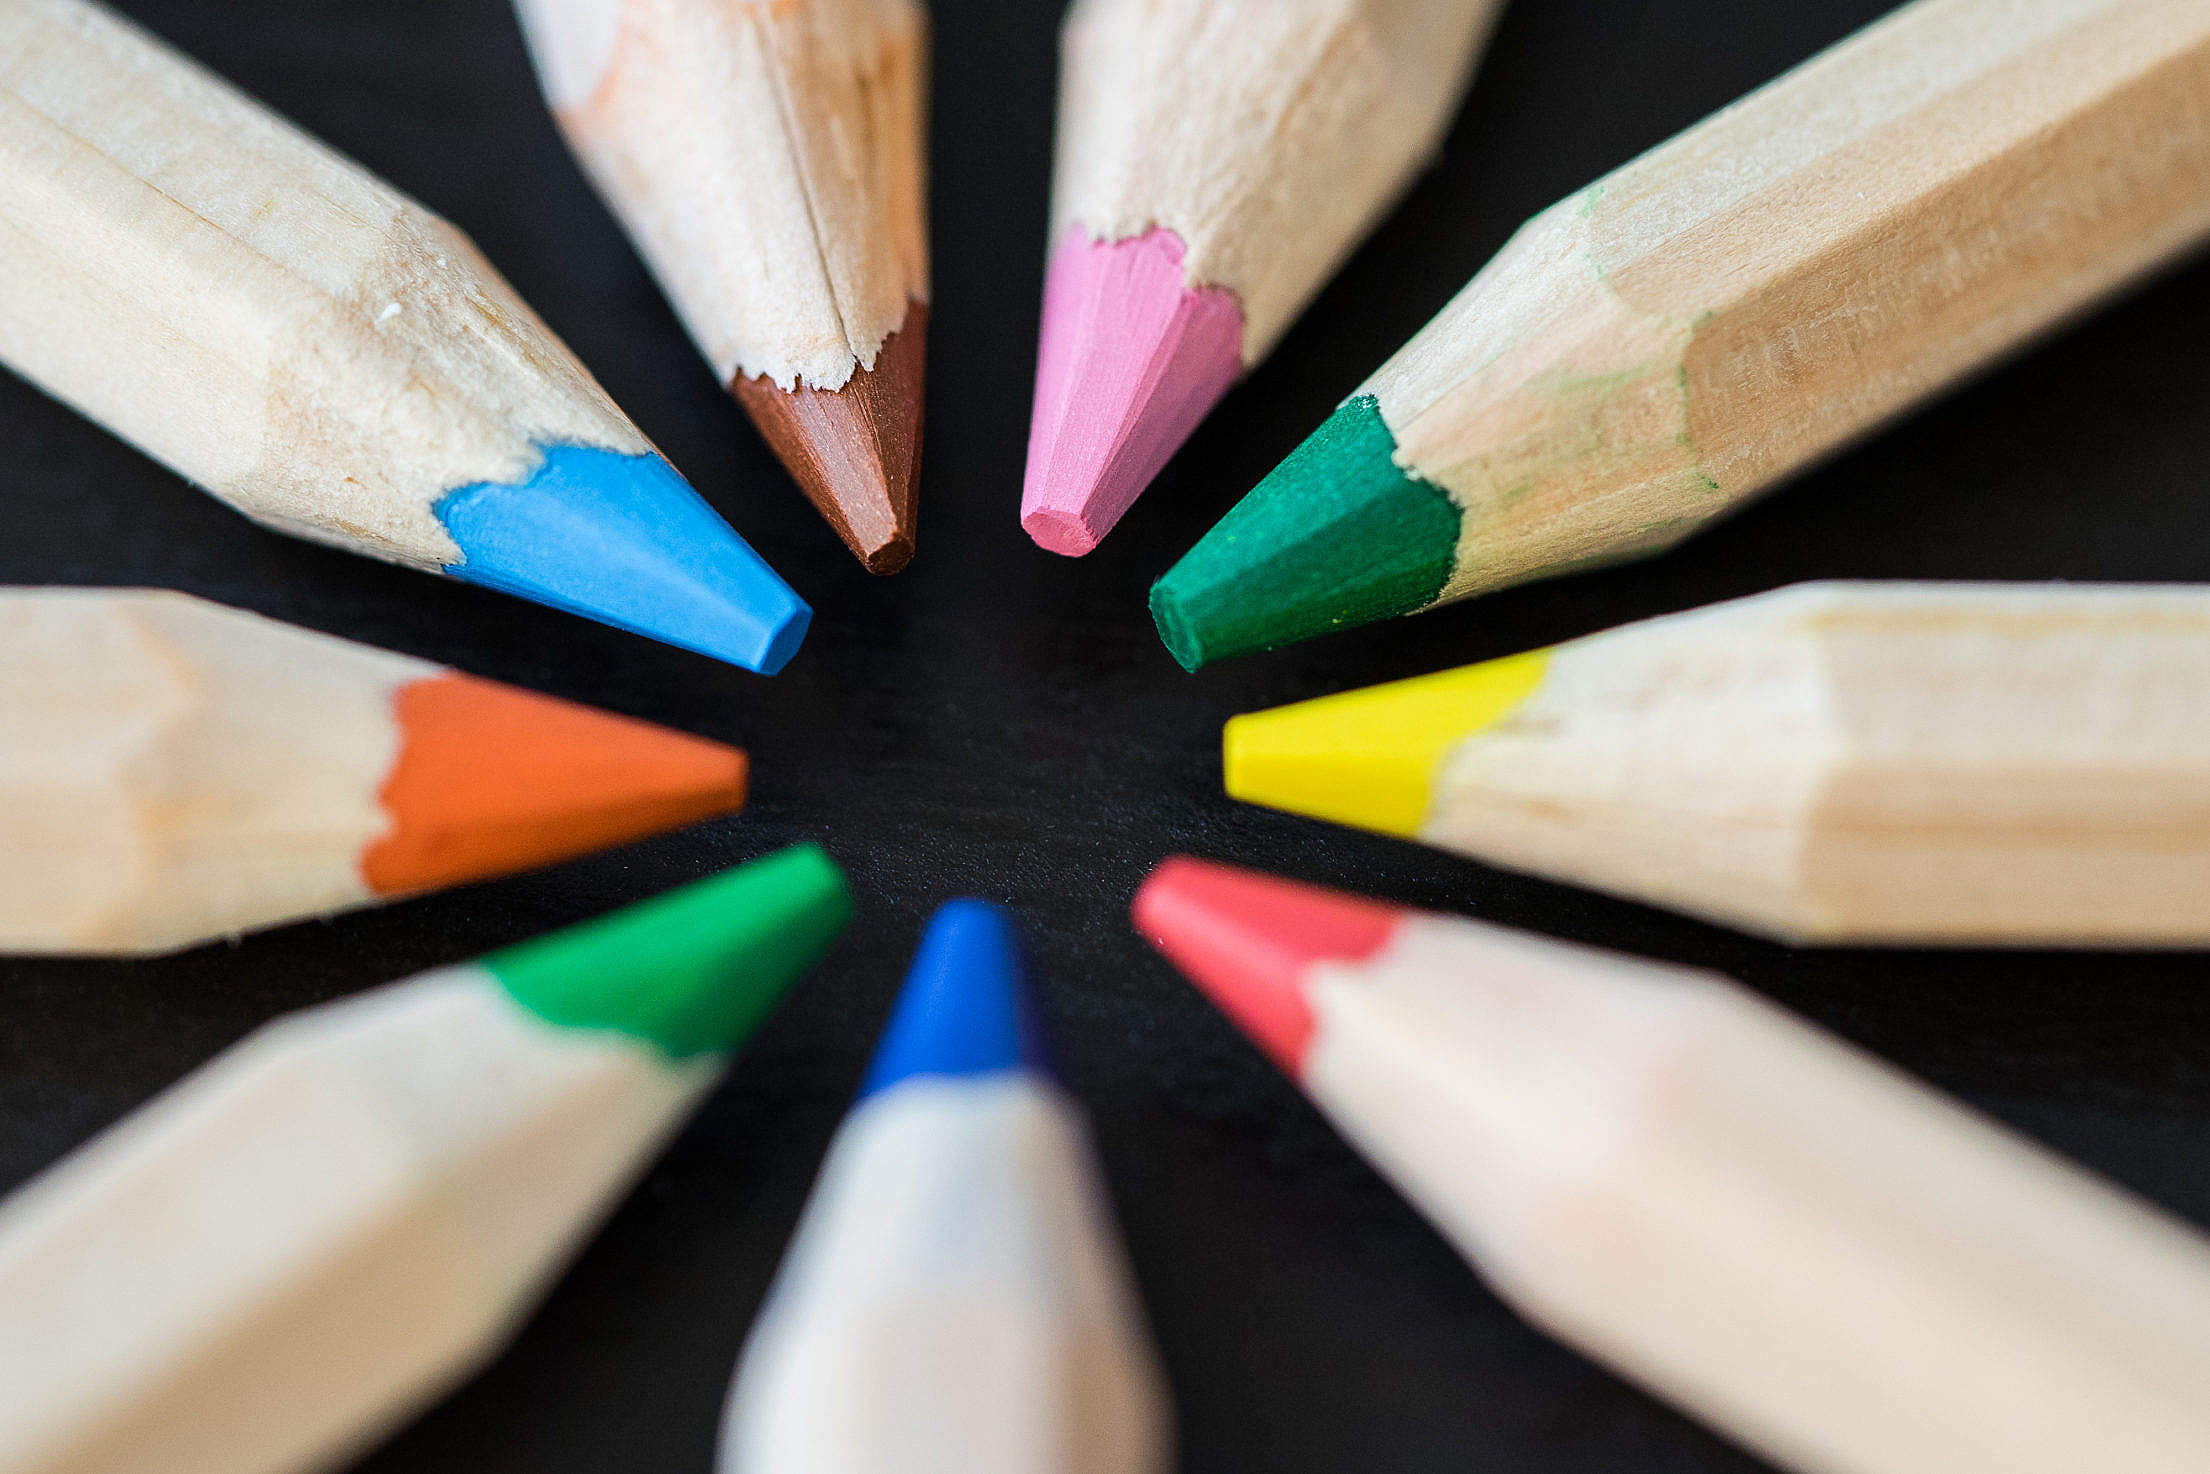 Colored Pencils in a Circle on a Black Desk Free Stock Photo